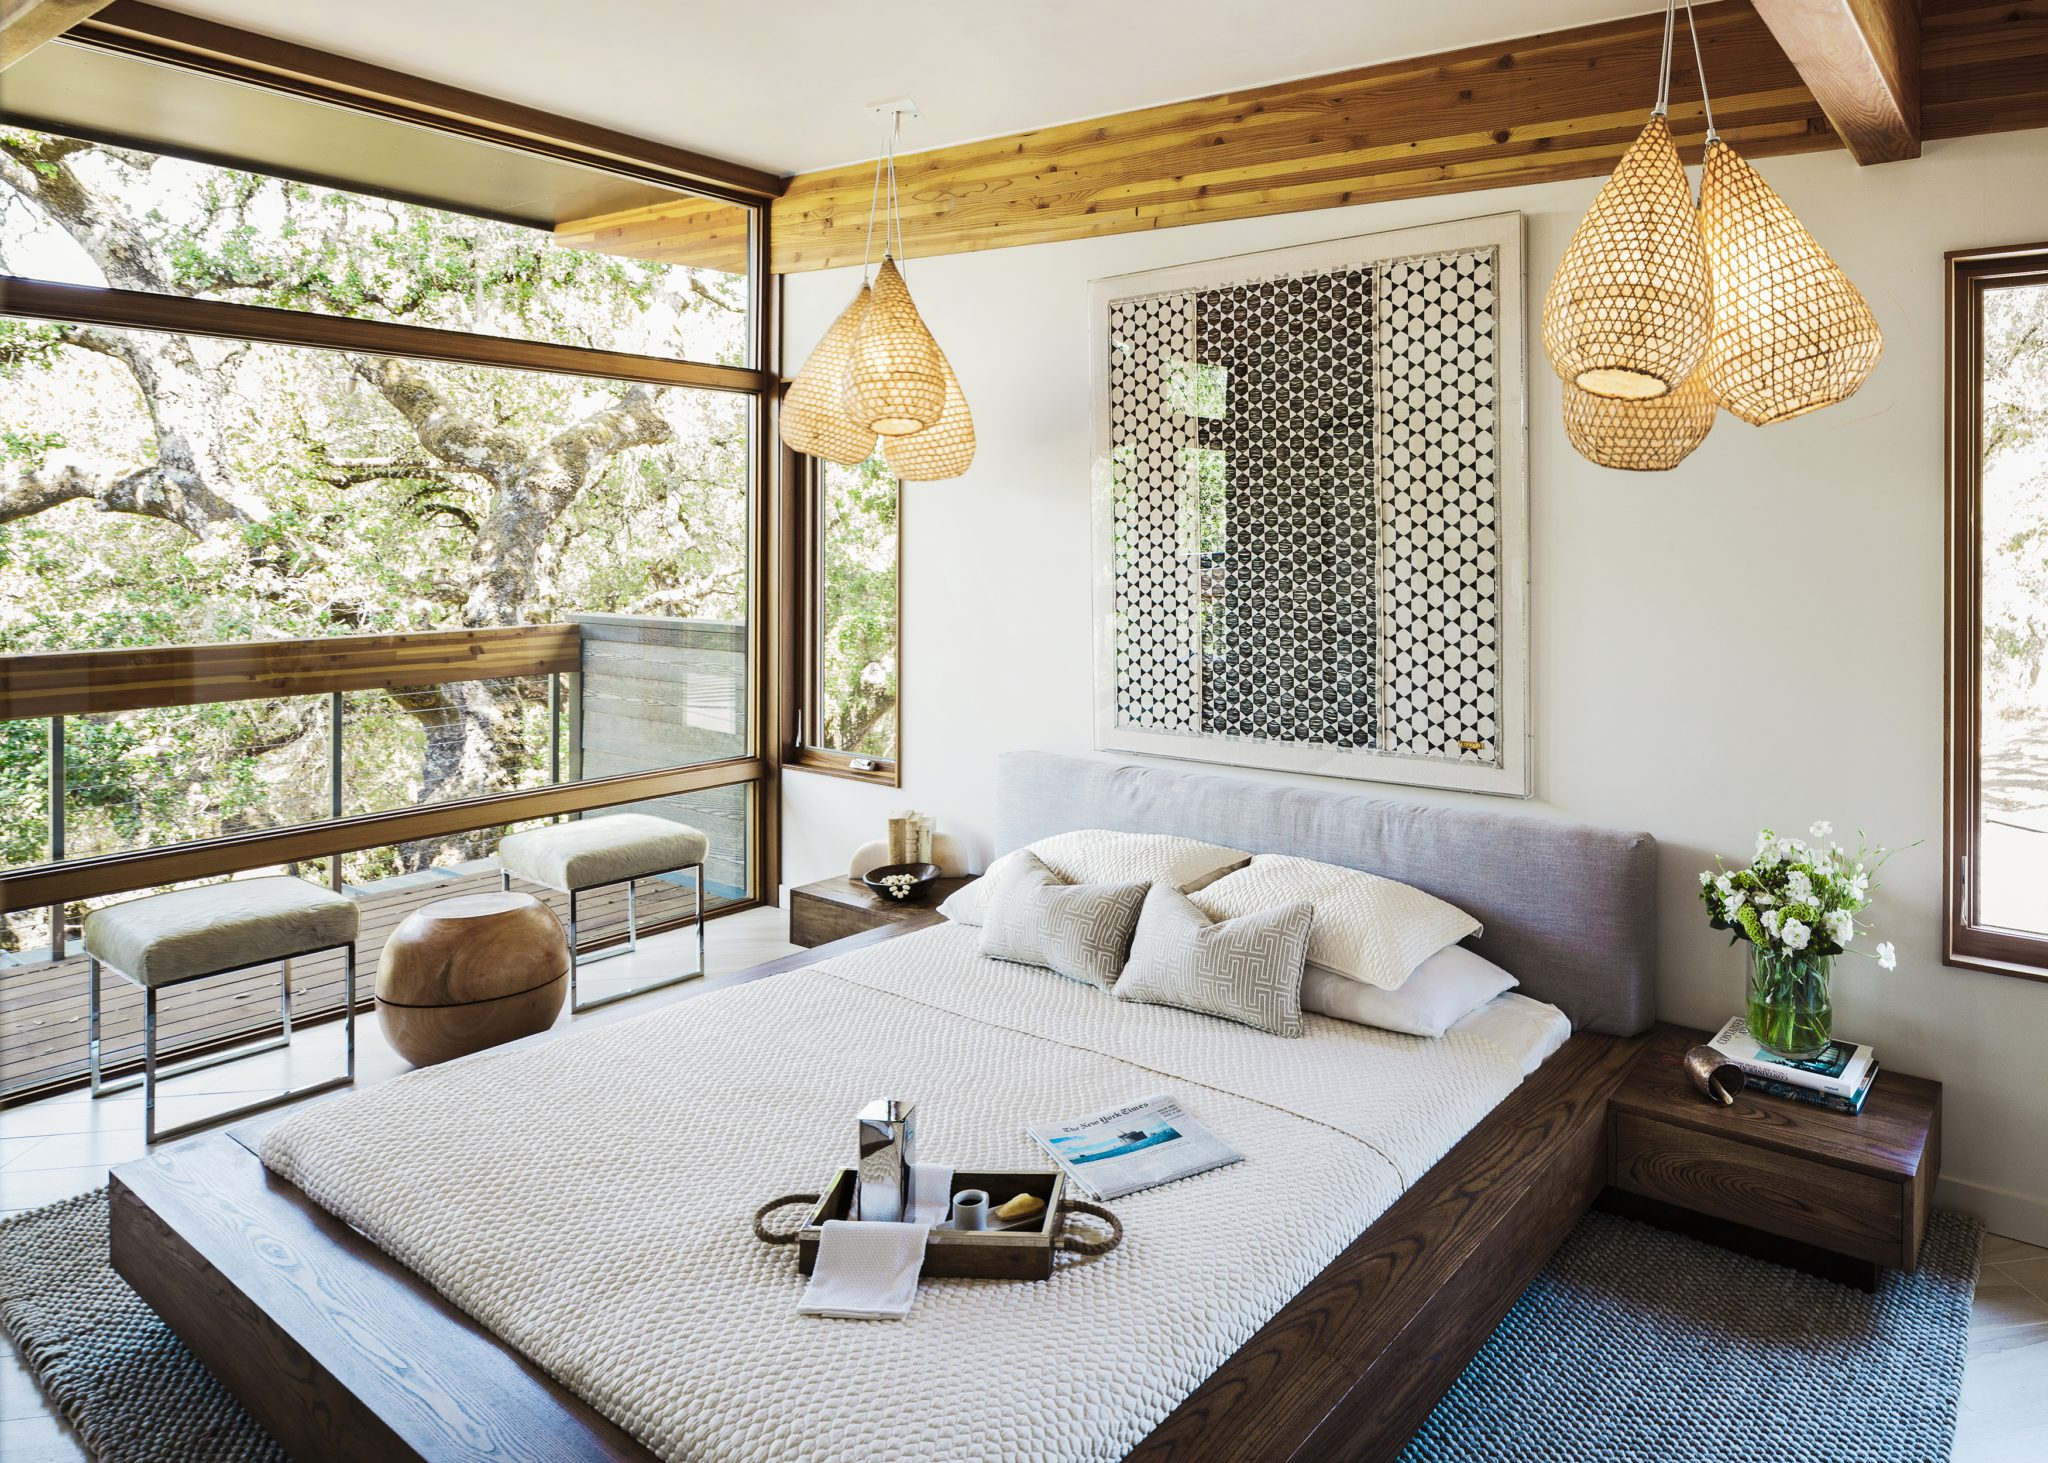 The pendant lighting here was crafted from fishing nets lined with paper, and sourced from Dering Hall. Hammers andHeels crafted the custom,Japananese-style platform bed, which also features a linen headboard,from sustainably harvested poplar wood. The bed is set on a Starkrug, and the cowhide and metal benches and stools are from Scenario Home, with a stool from Bellacor placed between them. The artwork in a lucite frame, calledBiddew Noir,was designed by a Senegalese artist namedJohanna Bramble and purchased from St. Frank.